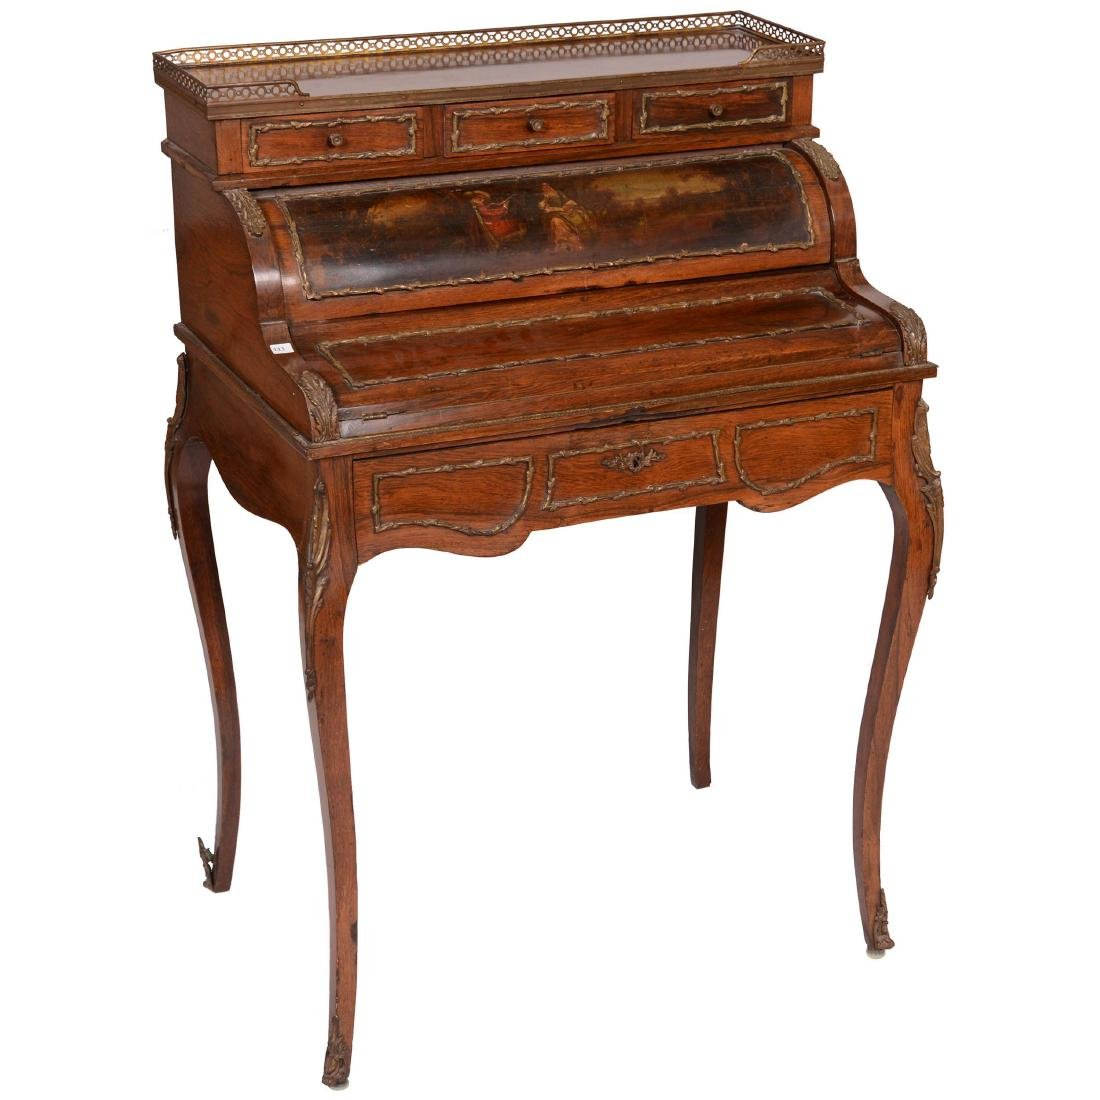 French Lady's Writing Desk